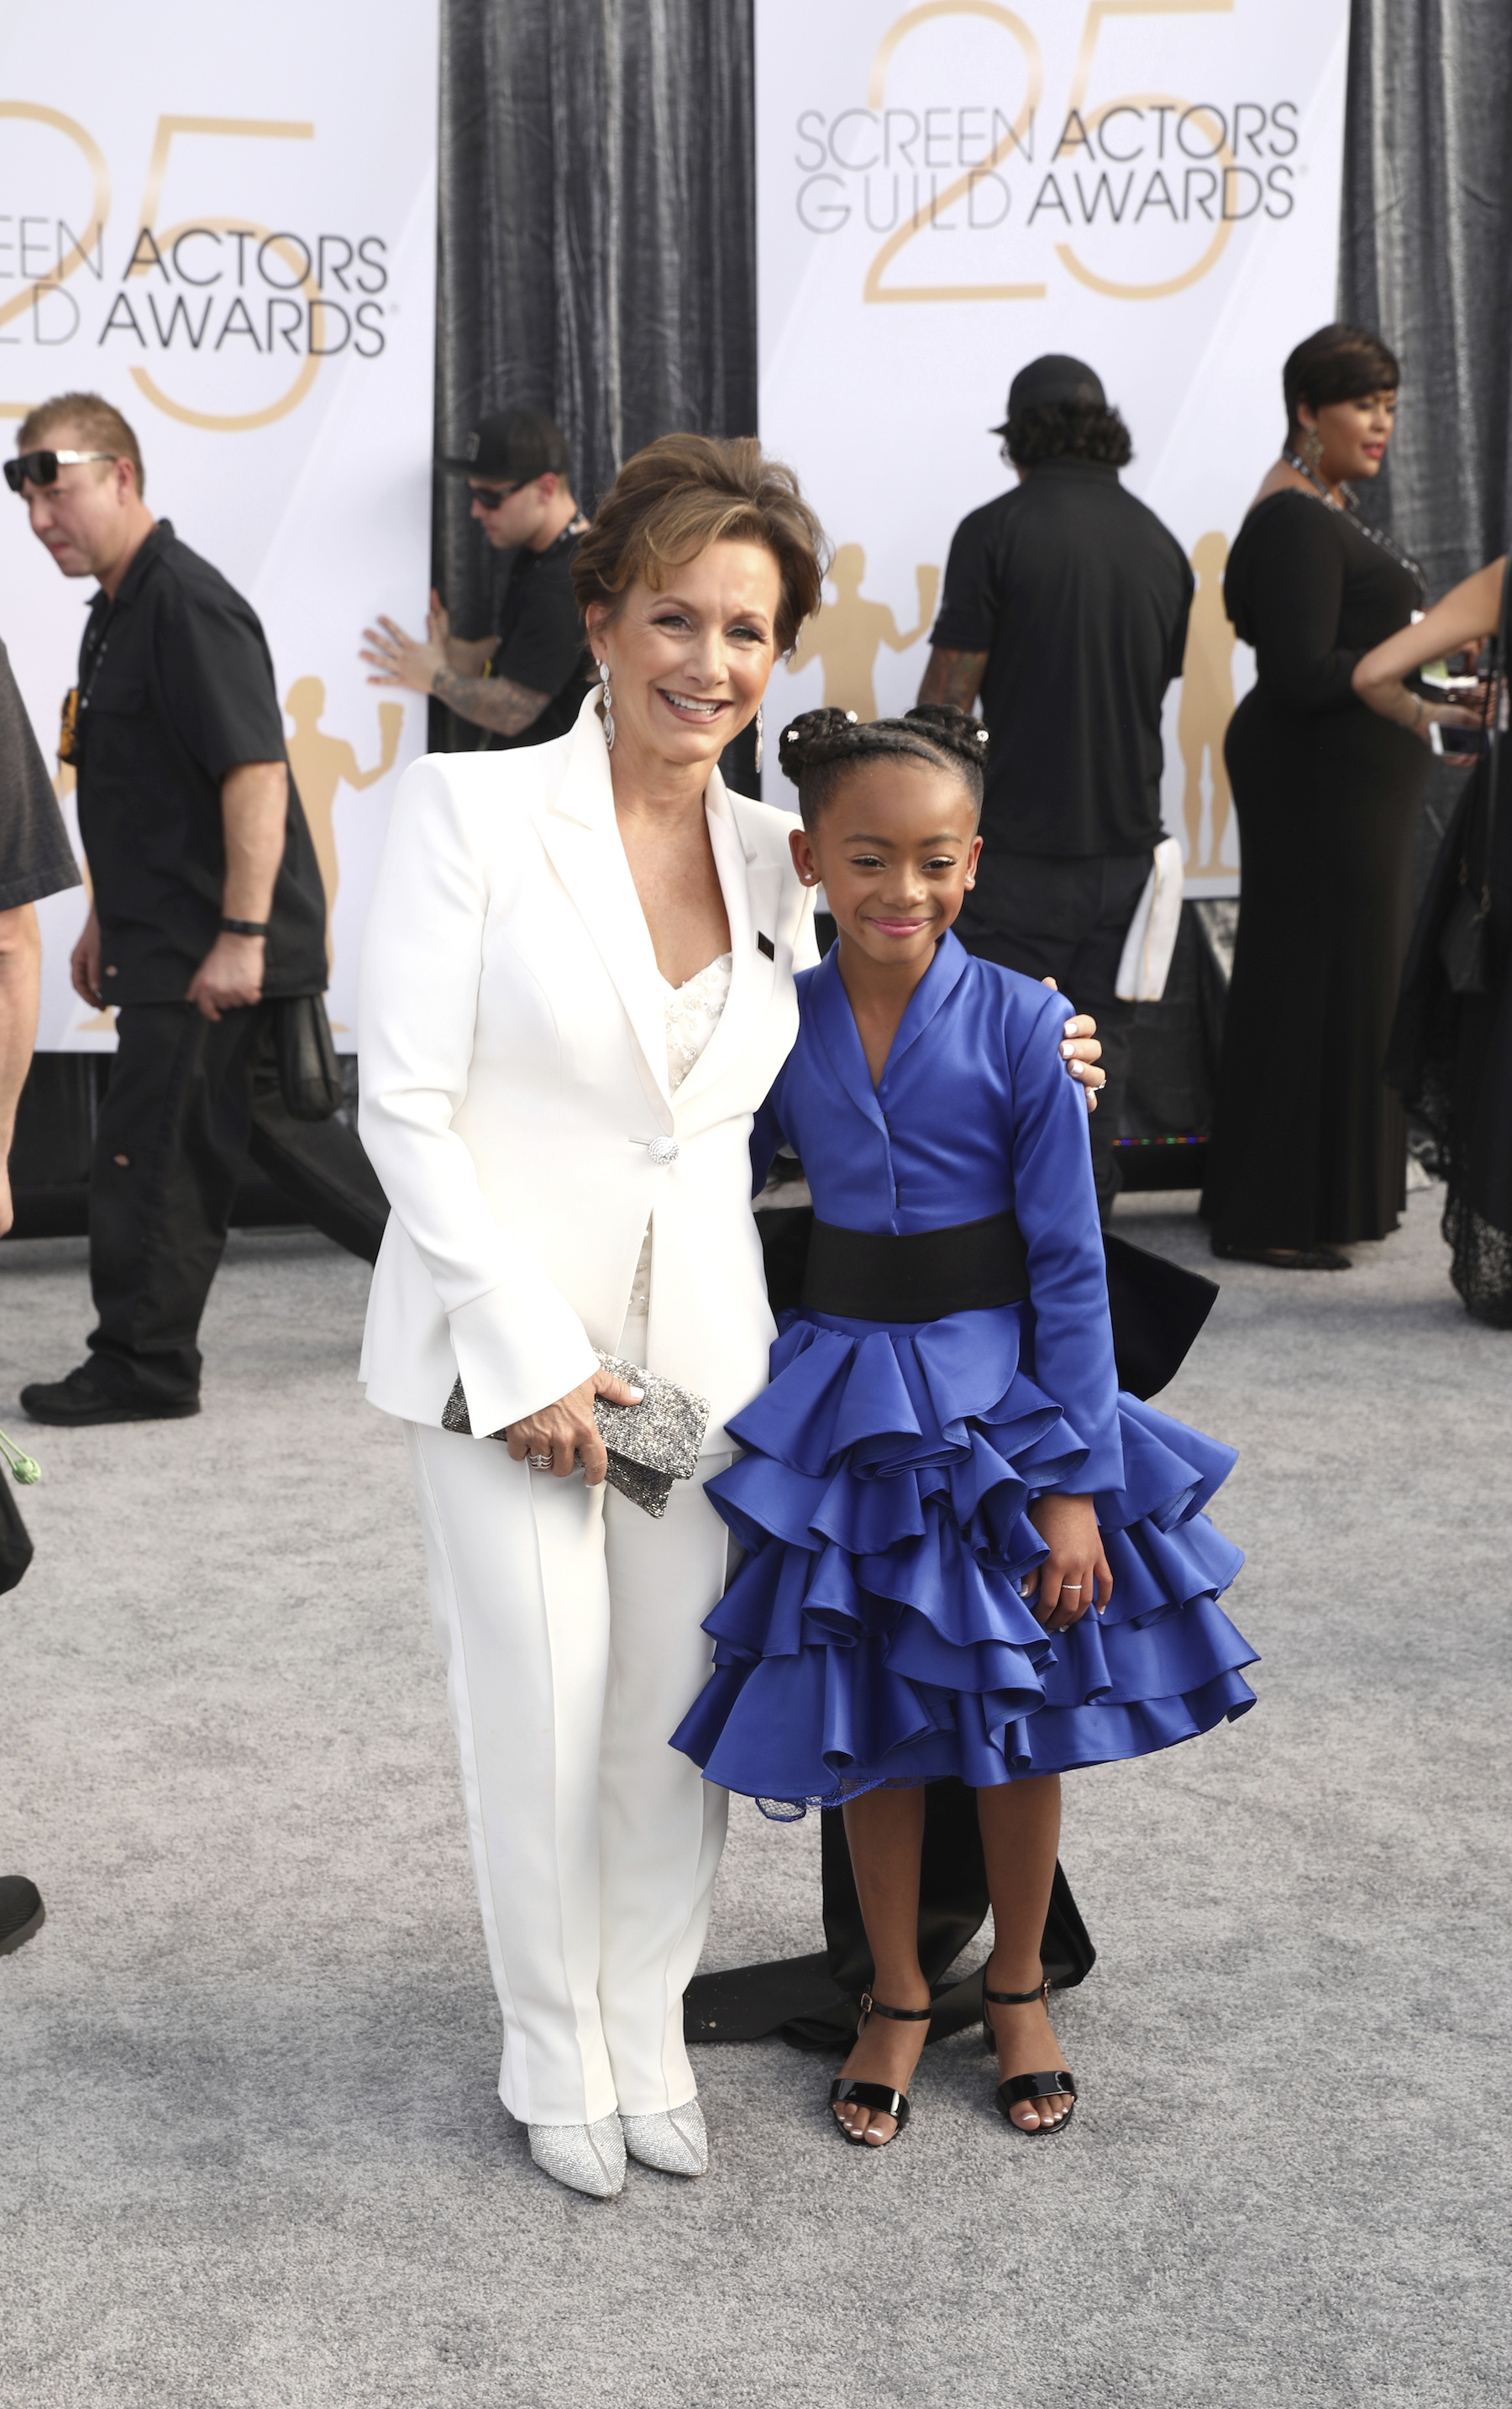 <div class='meta'><div class='origin-logo' data-origin='AP'></div><span class='caption-text' data-credit='Matt Sayles/Invision/AP'>Gabrielle Carteris, left, and Faithe C. Herman arrive at the 25th annual Screen Actors Guild Awards at the Shrine Auditorium & Expo Hall on Sunday, Jan. 27, 2019, in Los Angeles.</span></div>